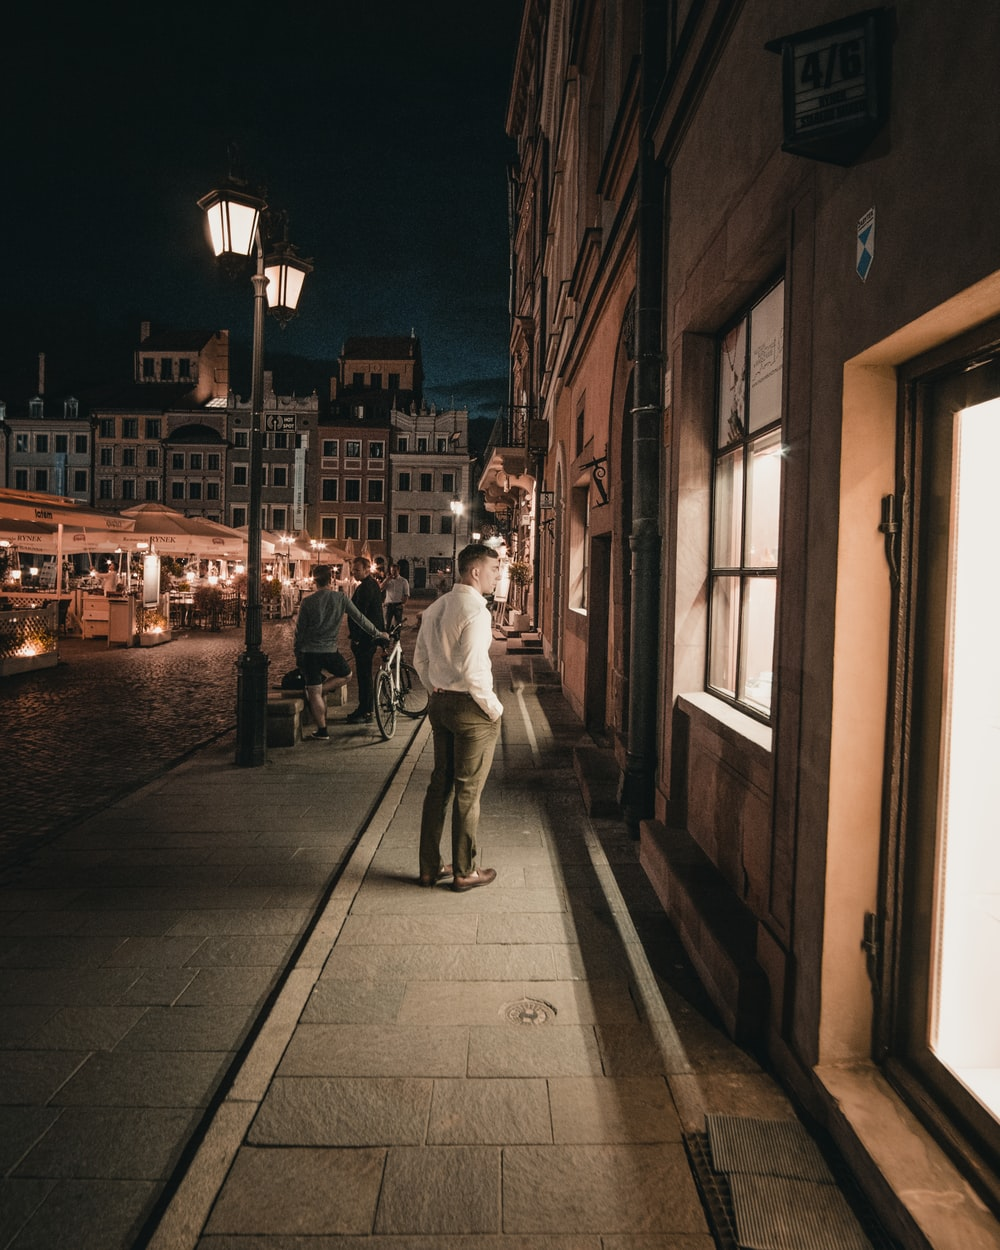 man standing and looking window